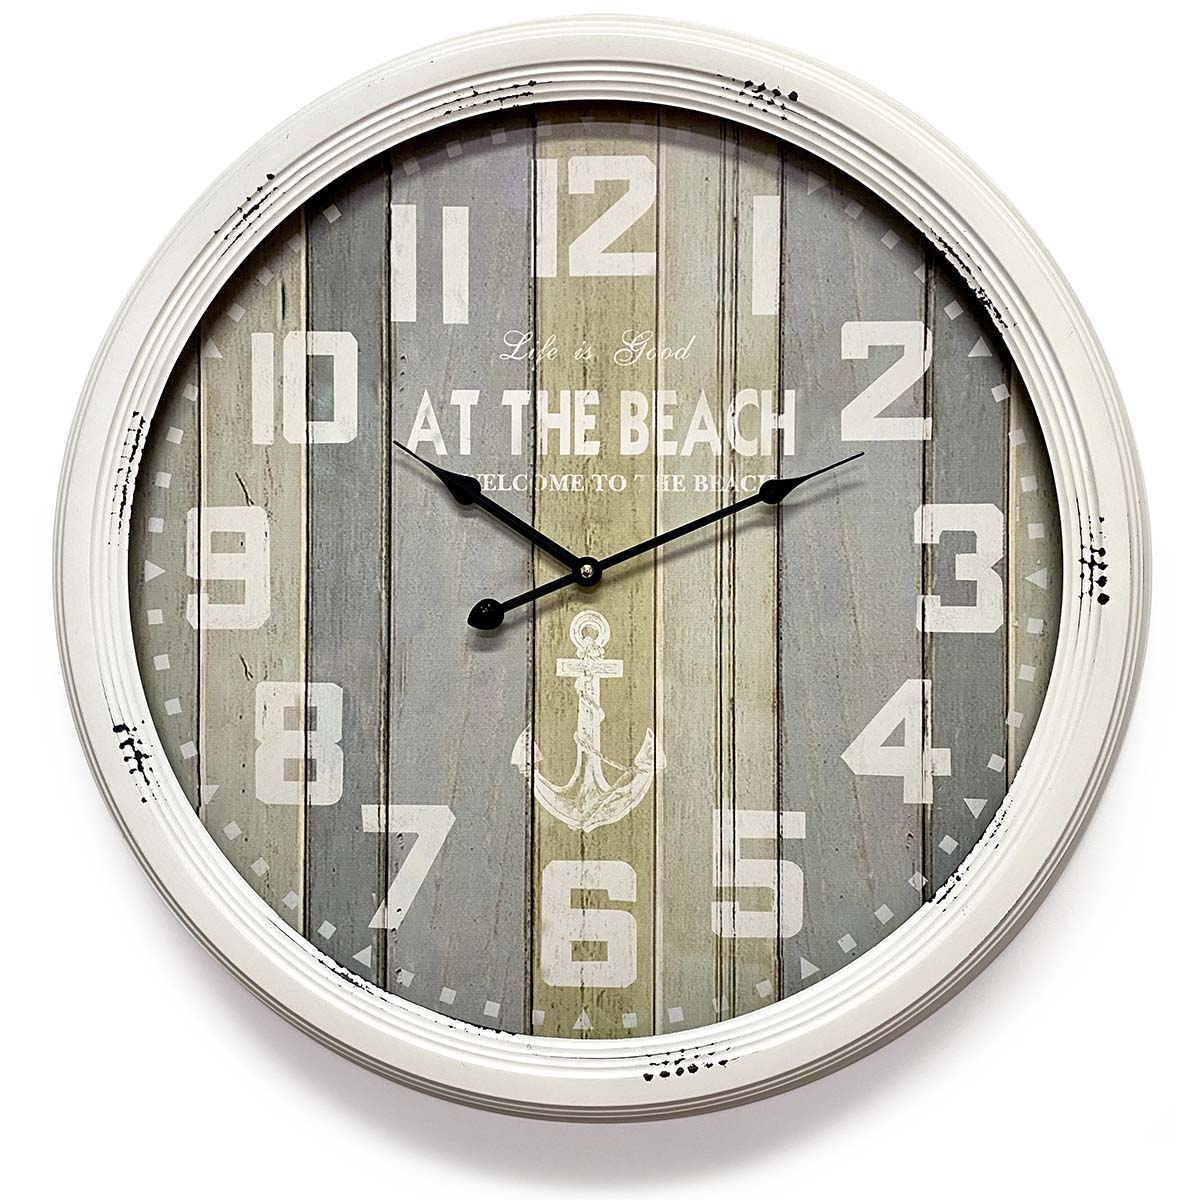 Victory At The Beach Extra Large Vintage Metal Wall Clock White 62cm CHH 322 2